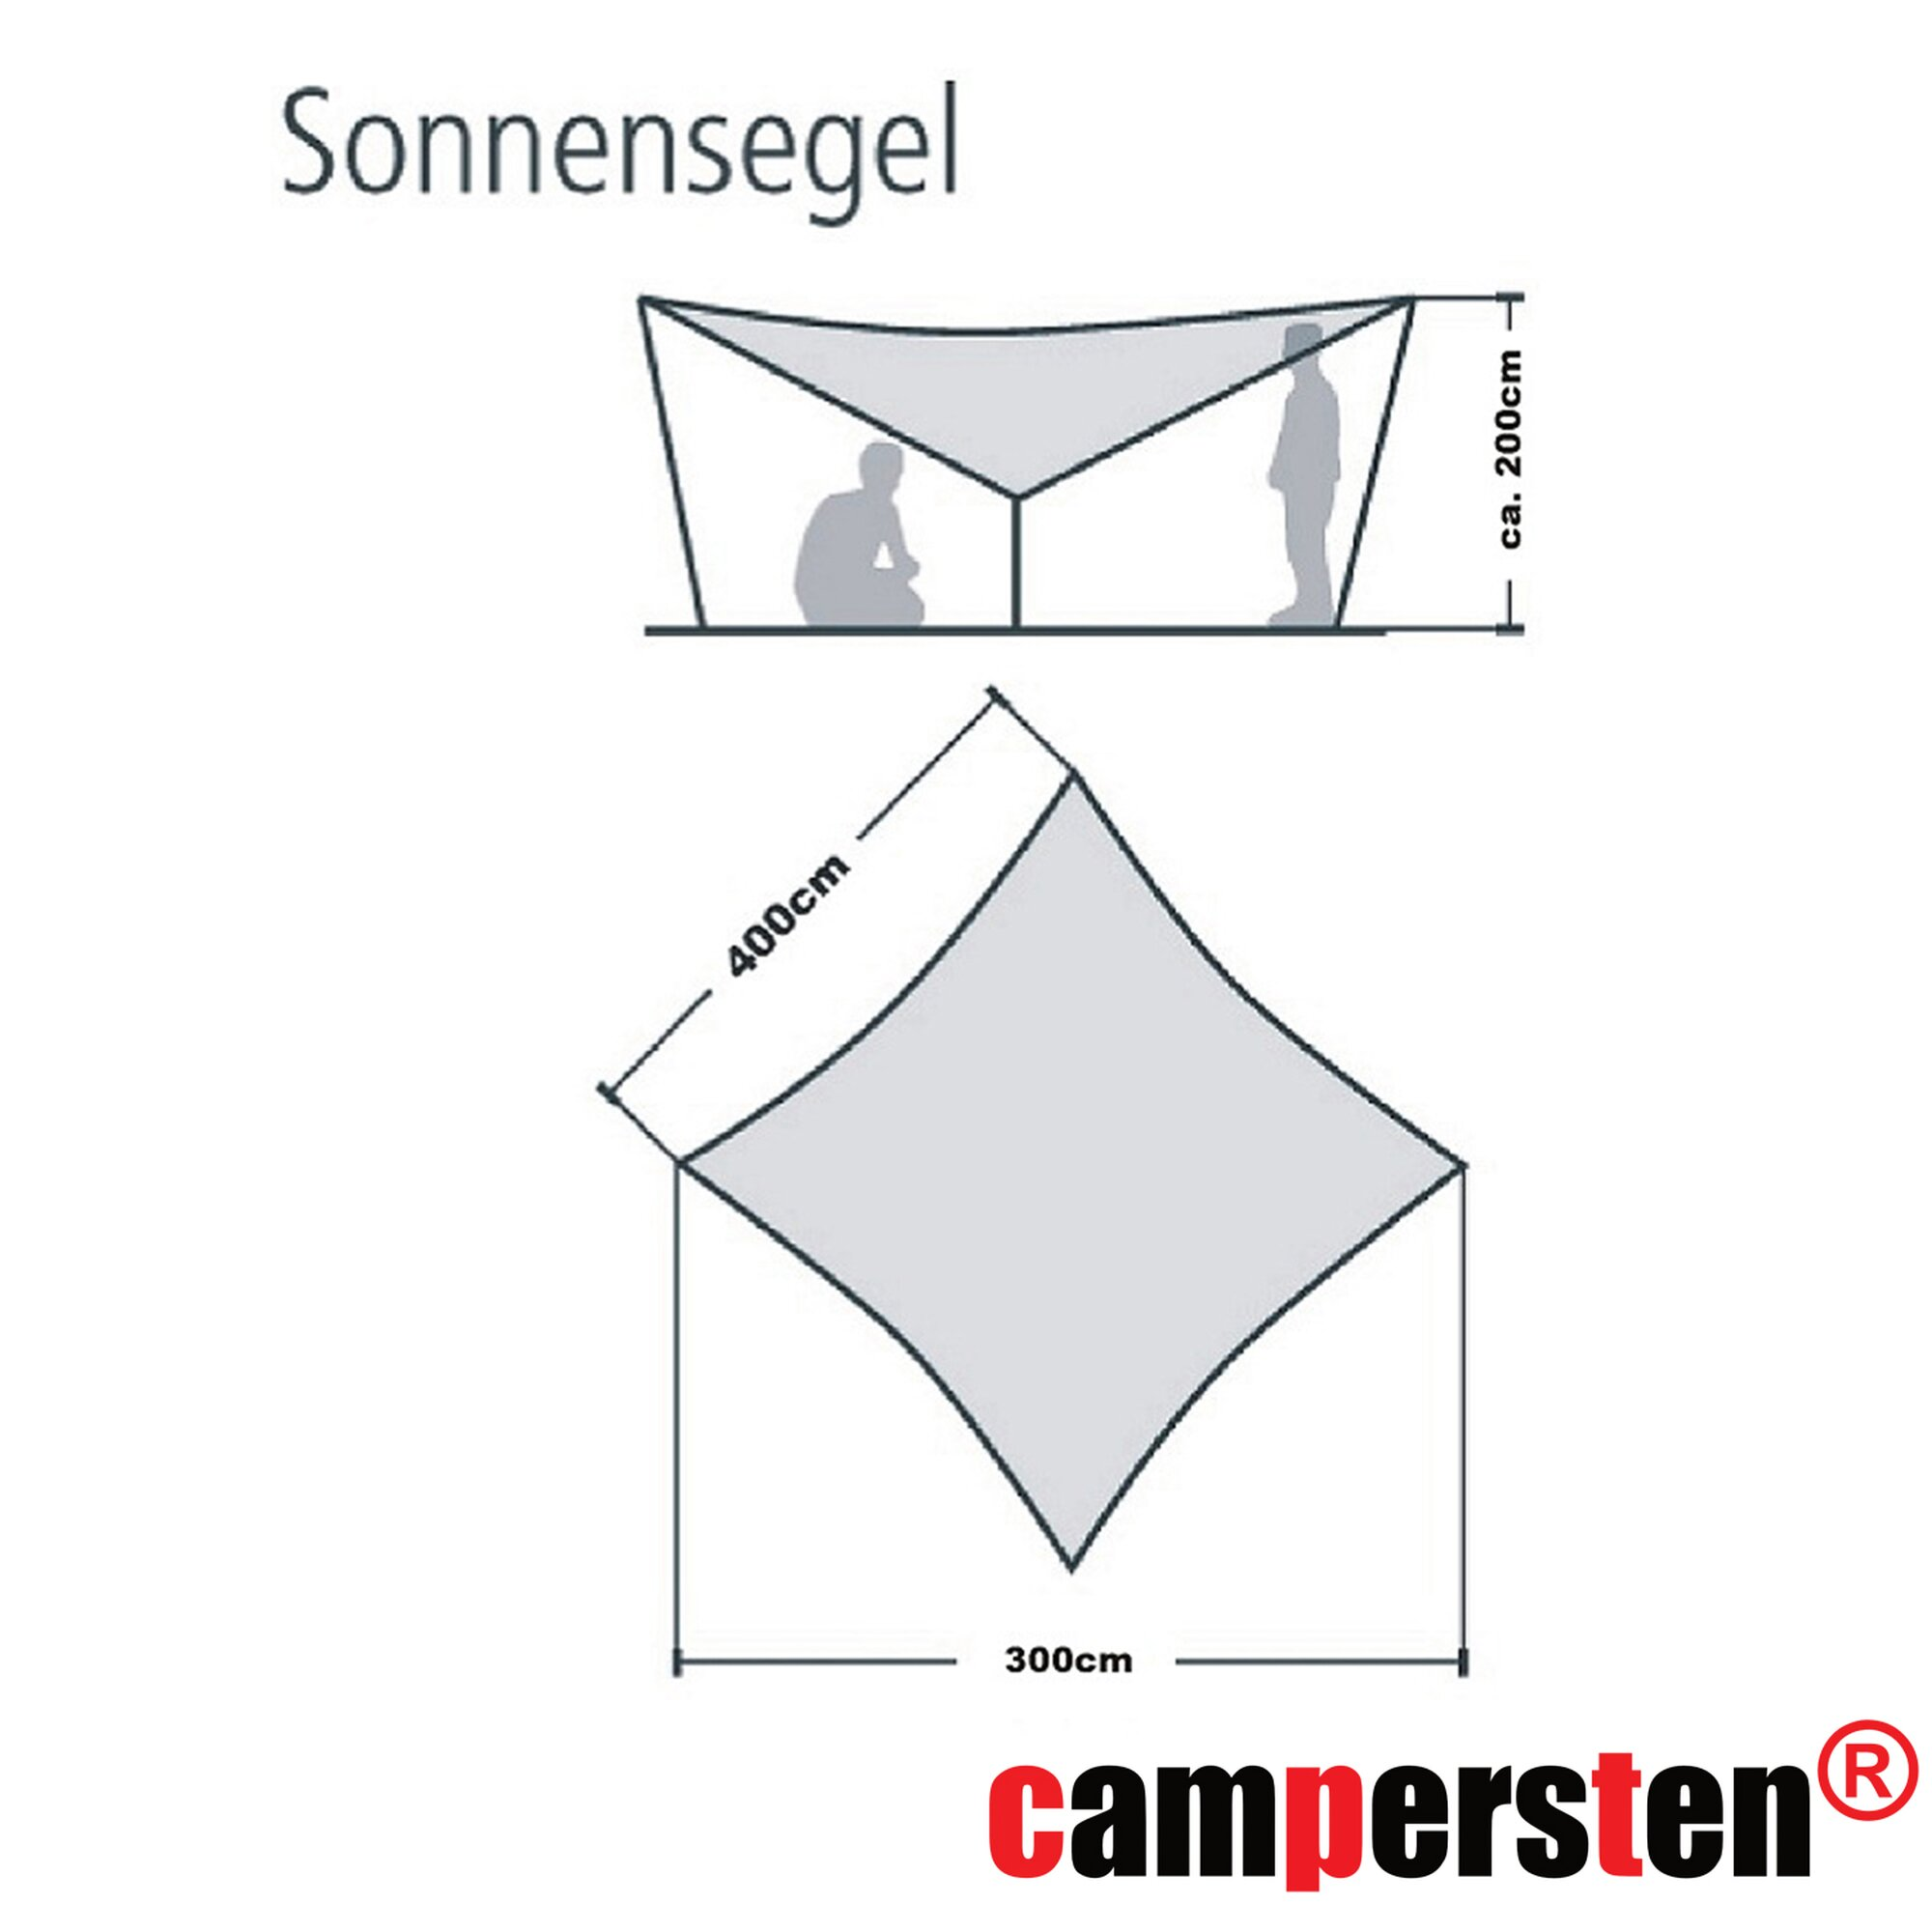 sonnensegel leinen camping sonnensegel x m wasserdicht freistehend mit gestnge und gestnge with. Black Bedroom Furniture Sets. Home Design Ideas